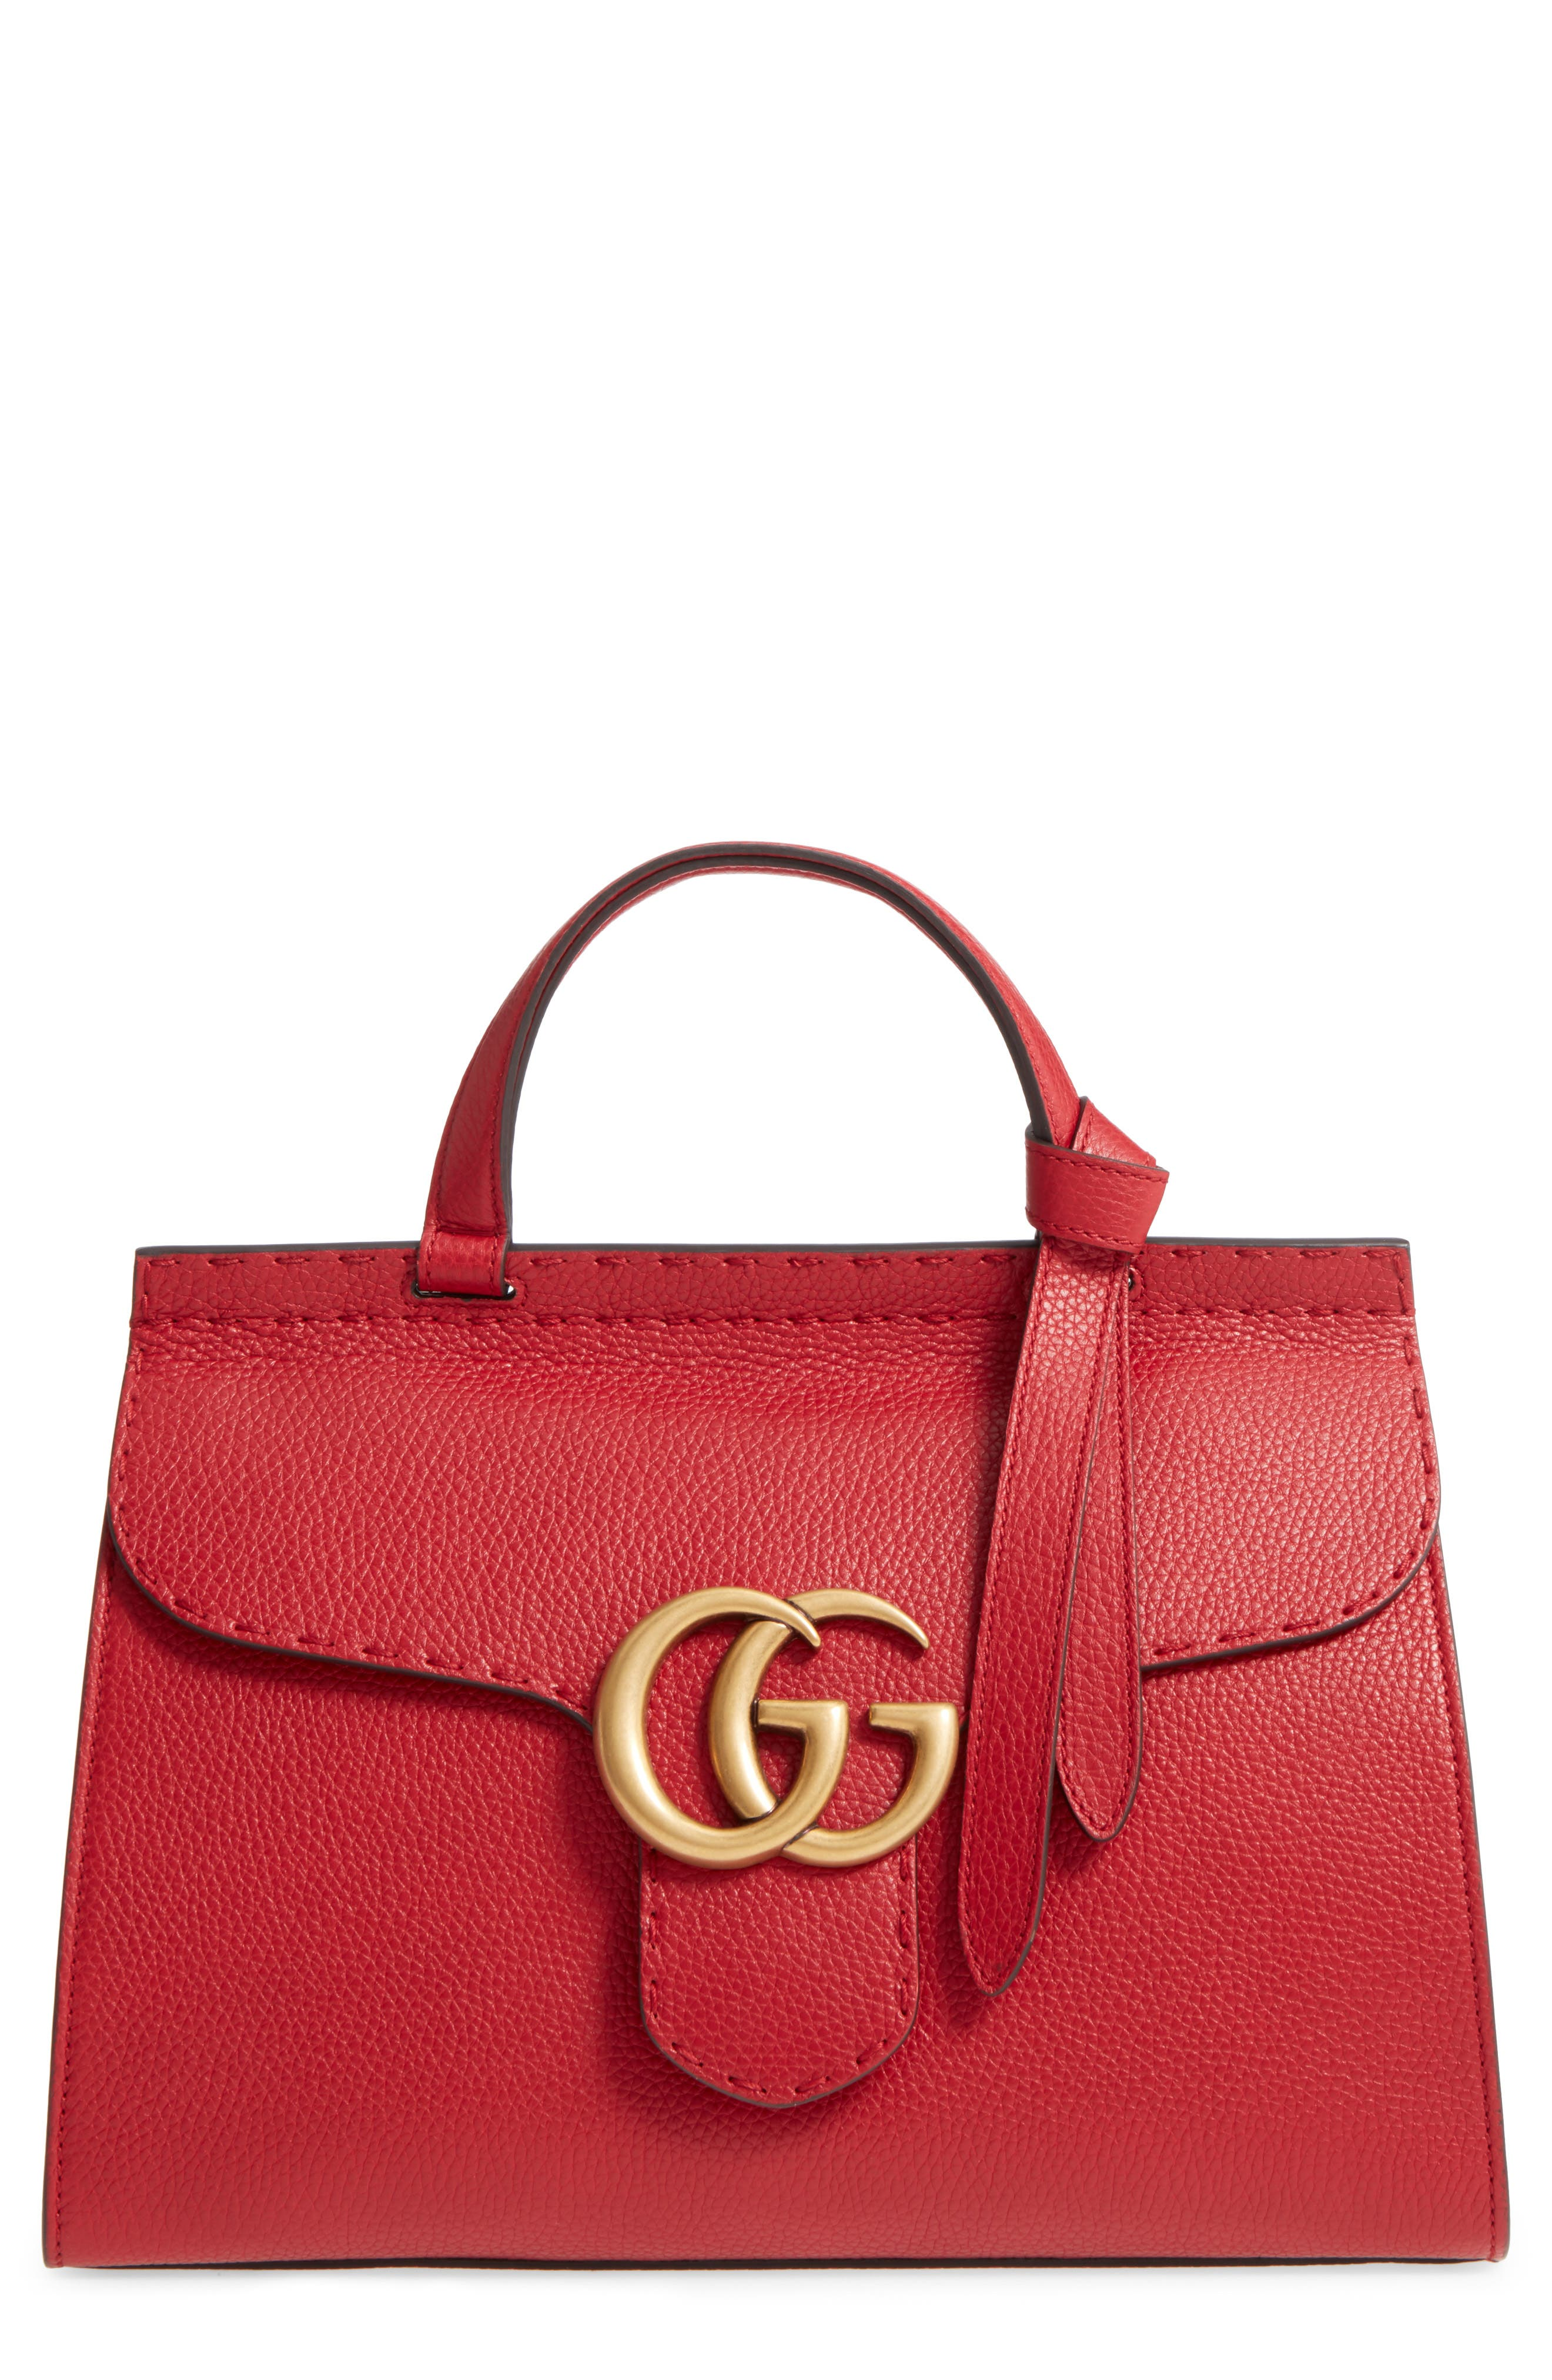 gucci bags at nordstrom. gucci gg marmont top handle leather satchel bags at nordstrom m